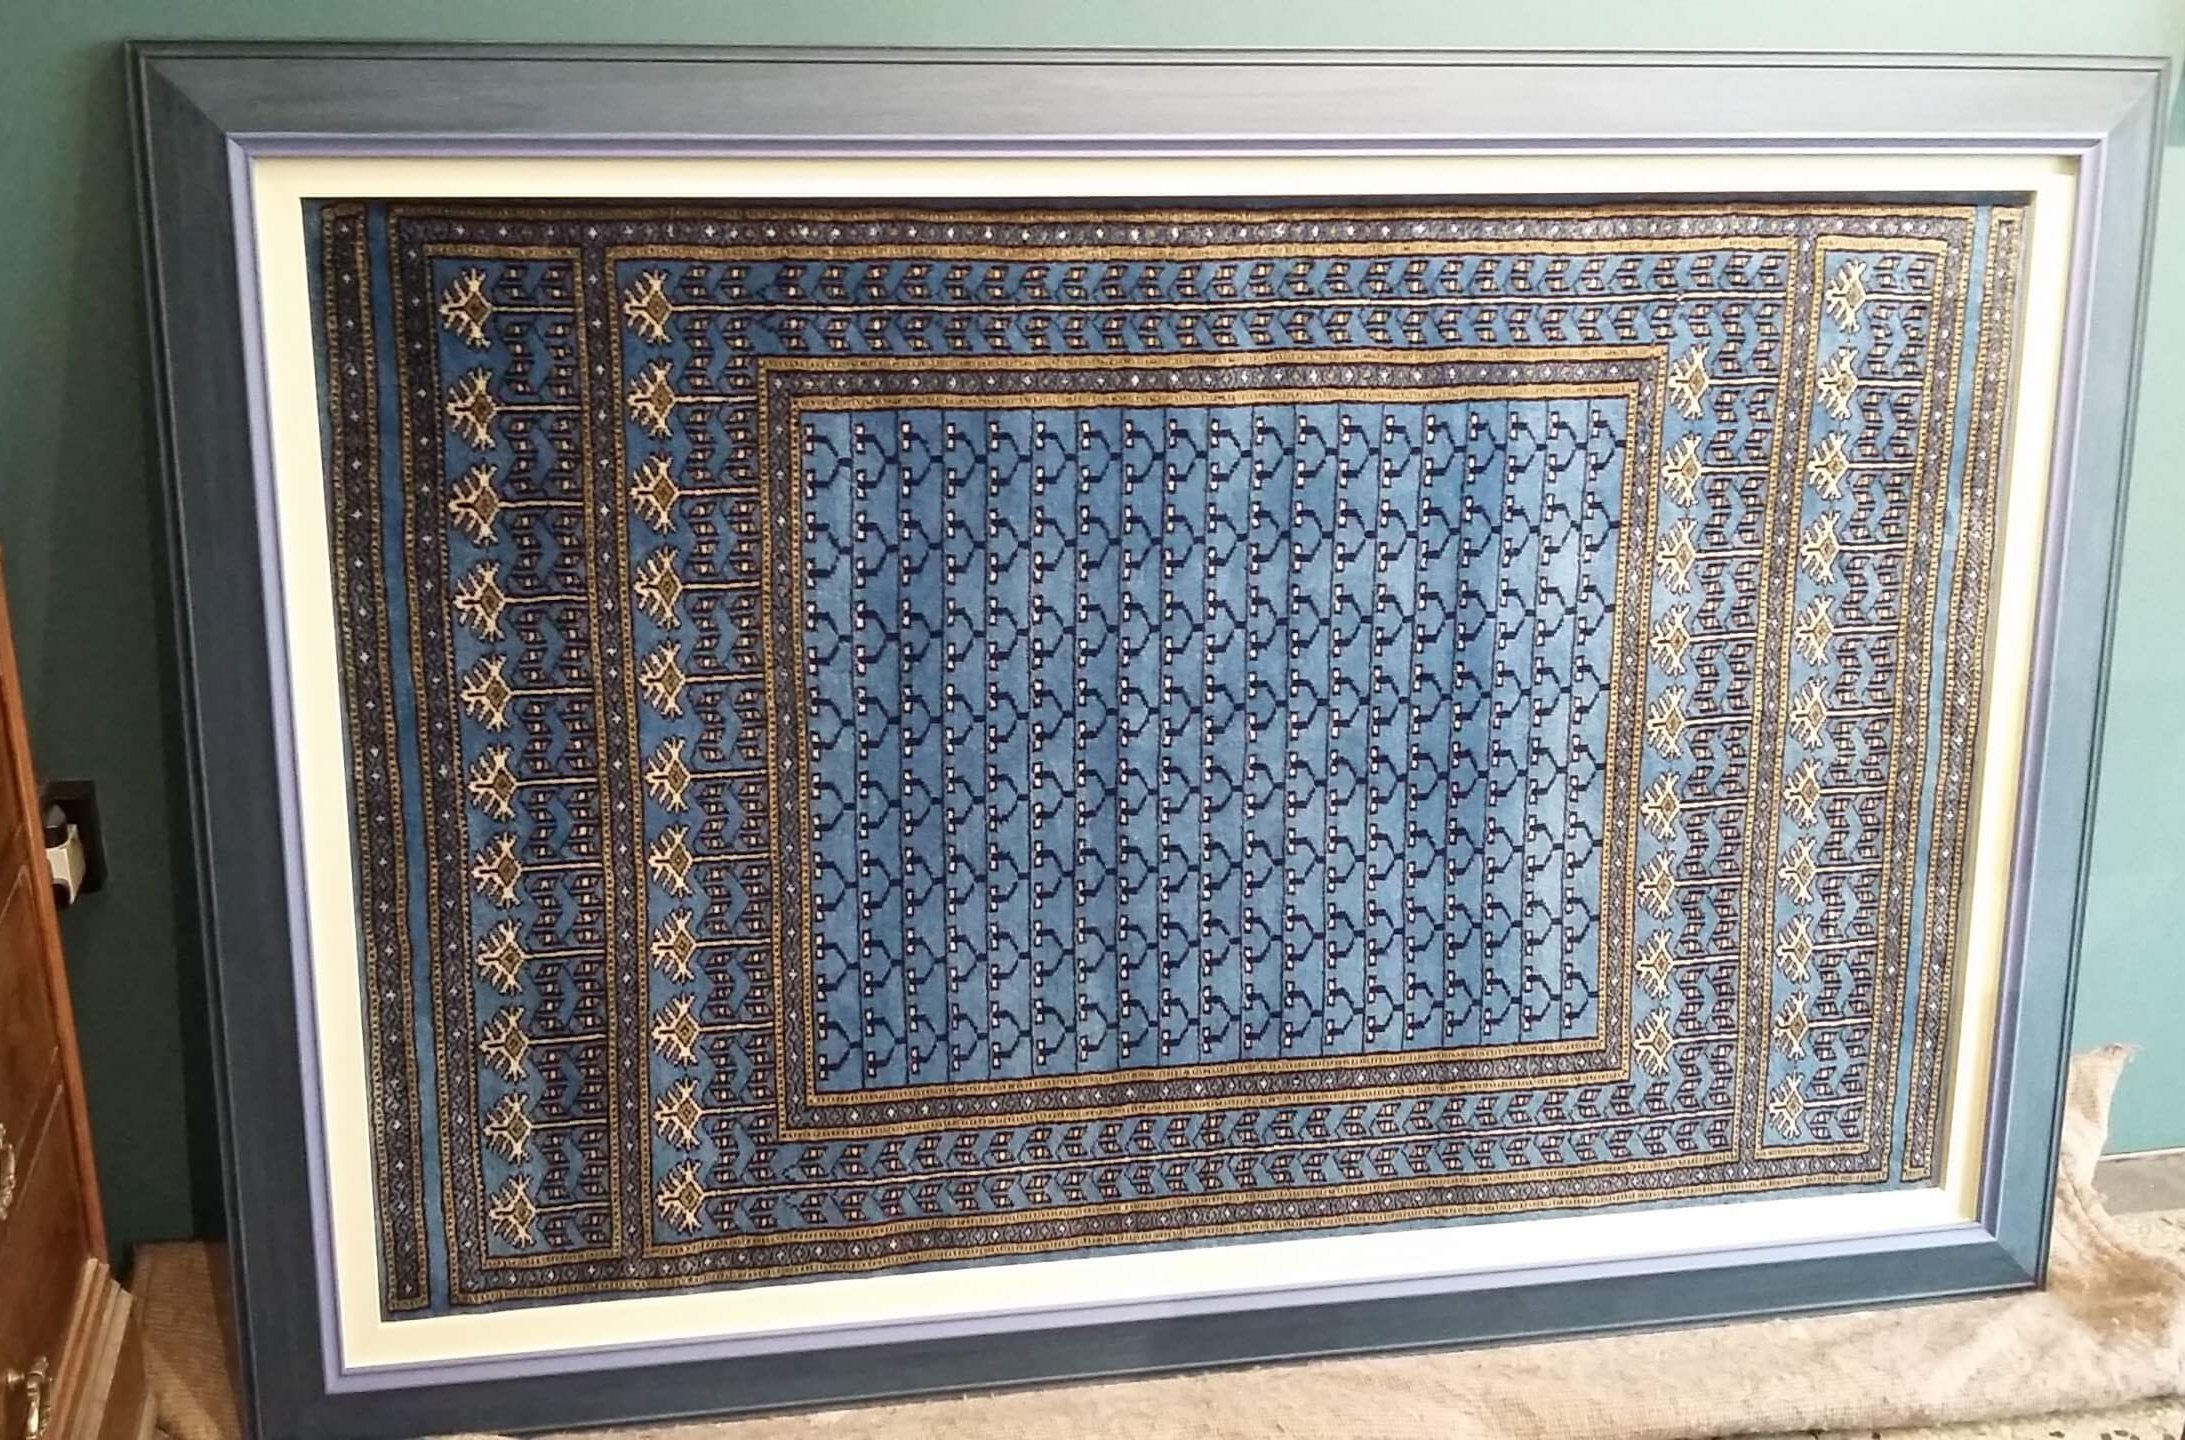 Indian Rug textile framed in a hand painted frame